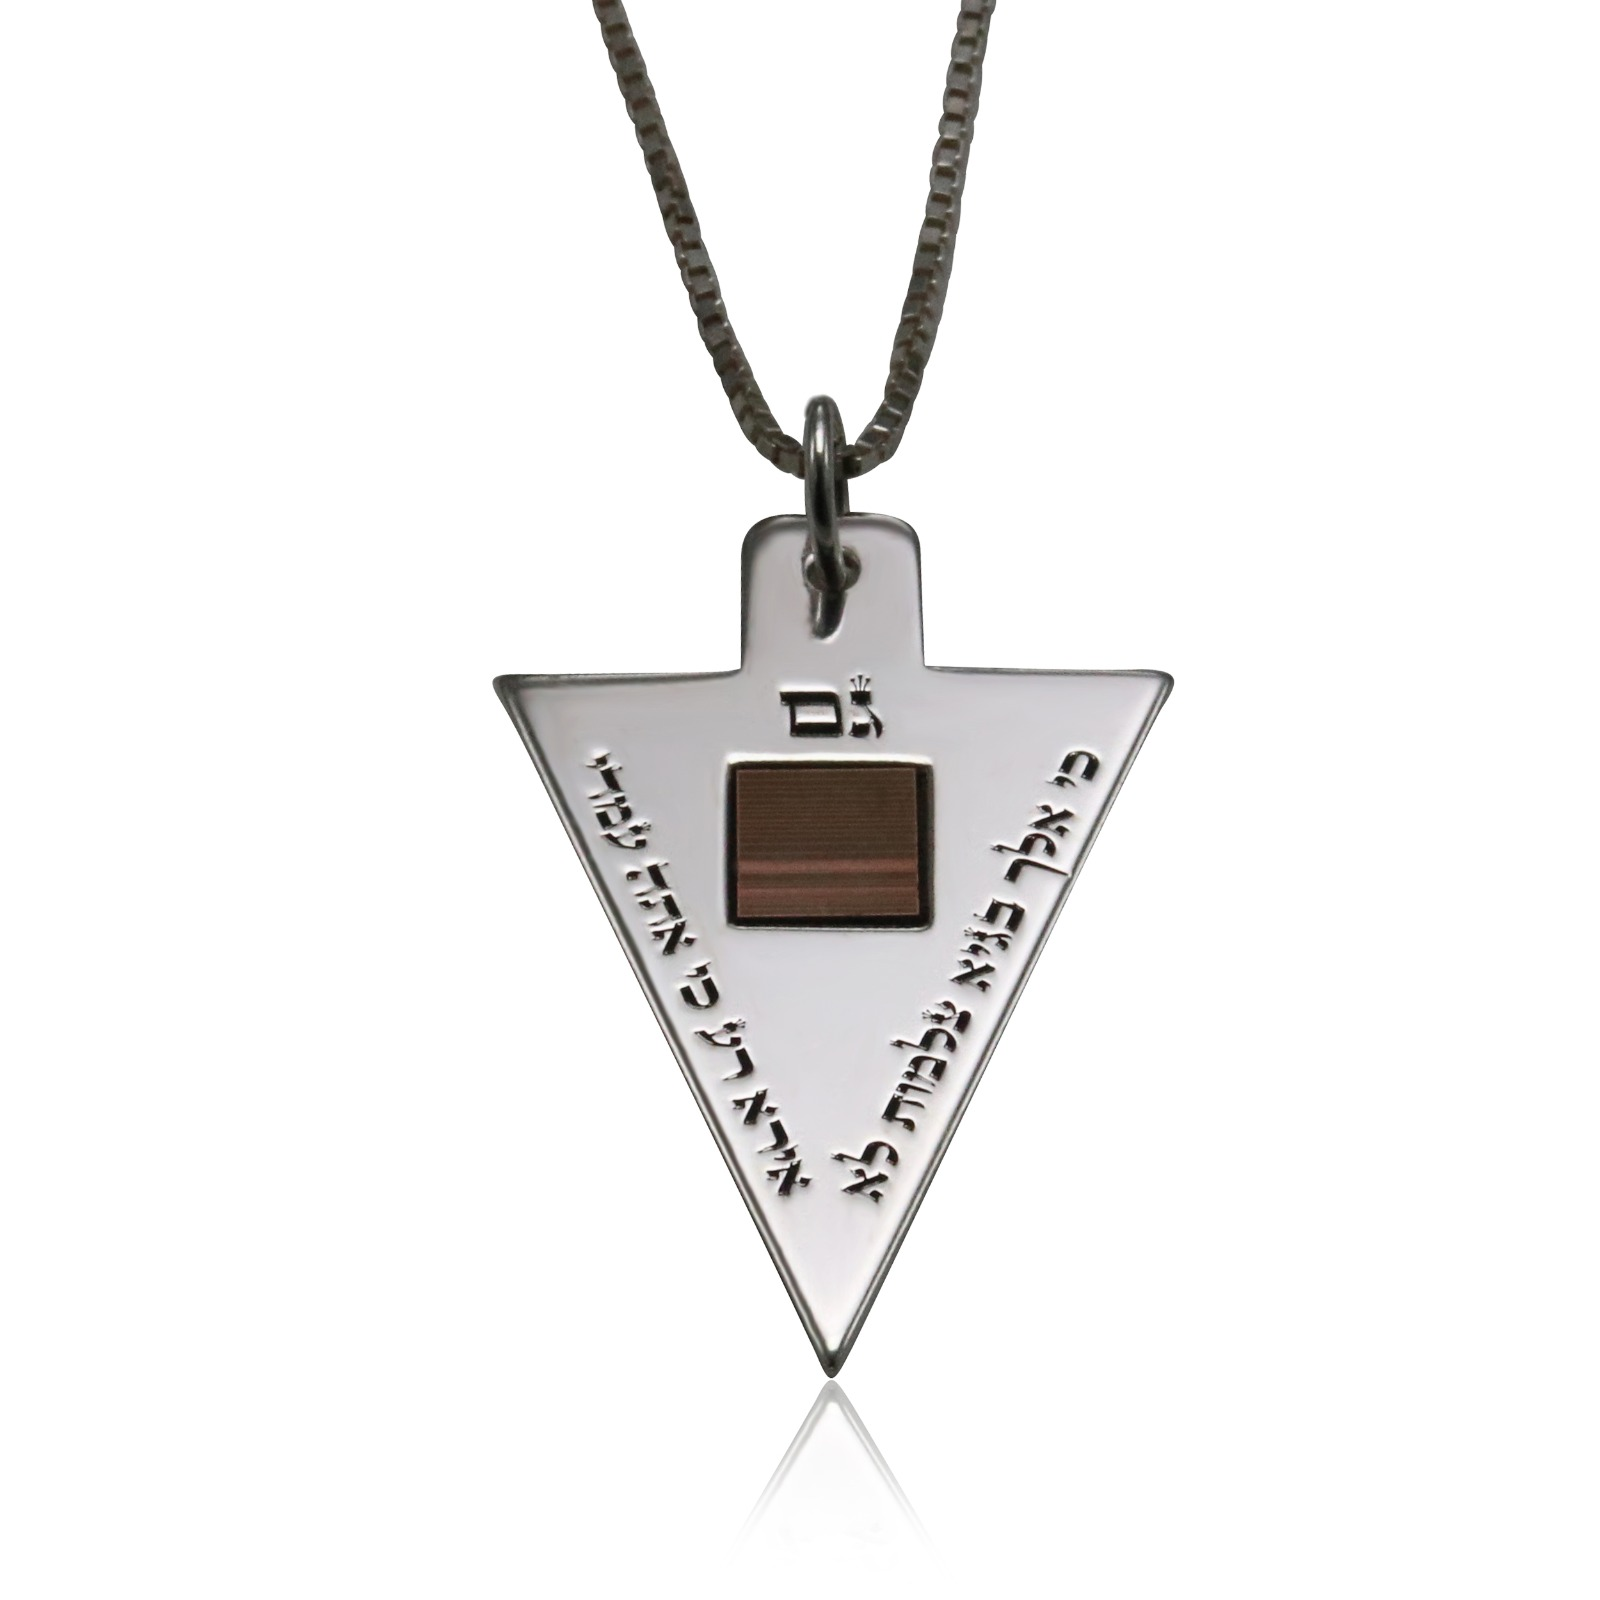 JERUSALEM NANO BIBLE SILVER PENDANT WITH A QUOTE FROM PSALMS